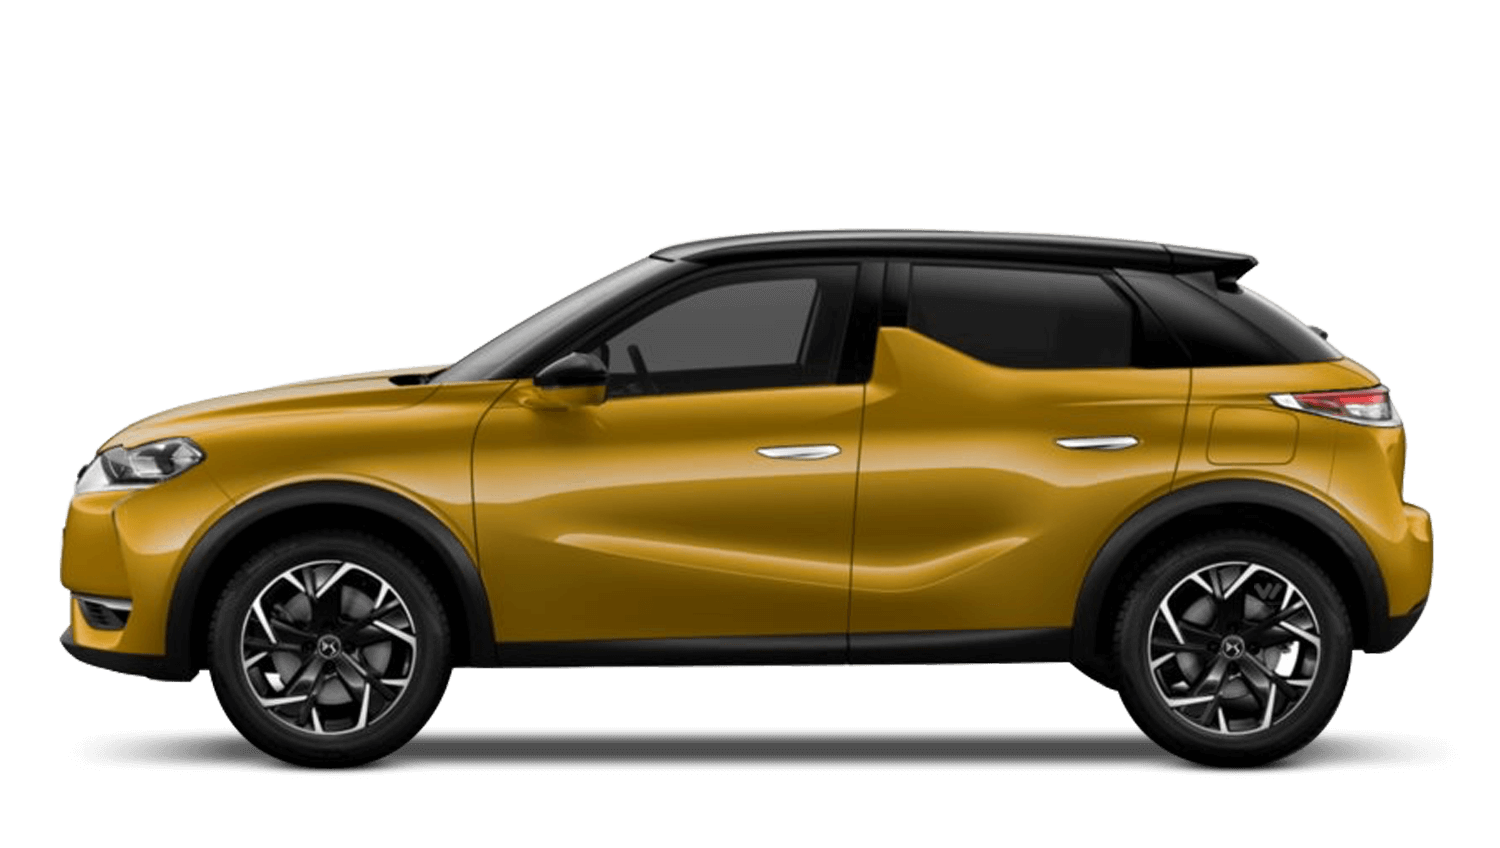 Imperial Gold (Metallic) DS 3 CROSSBACK